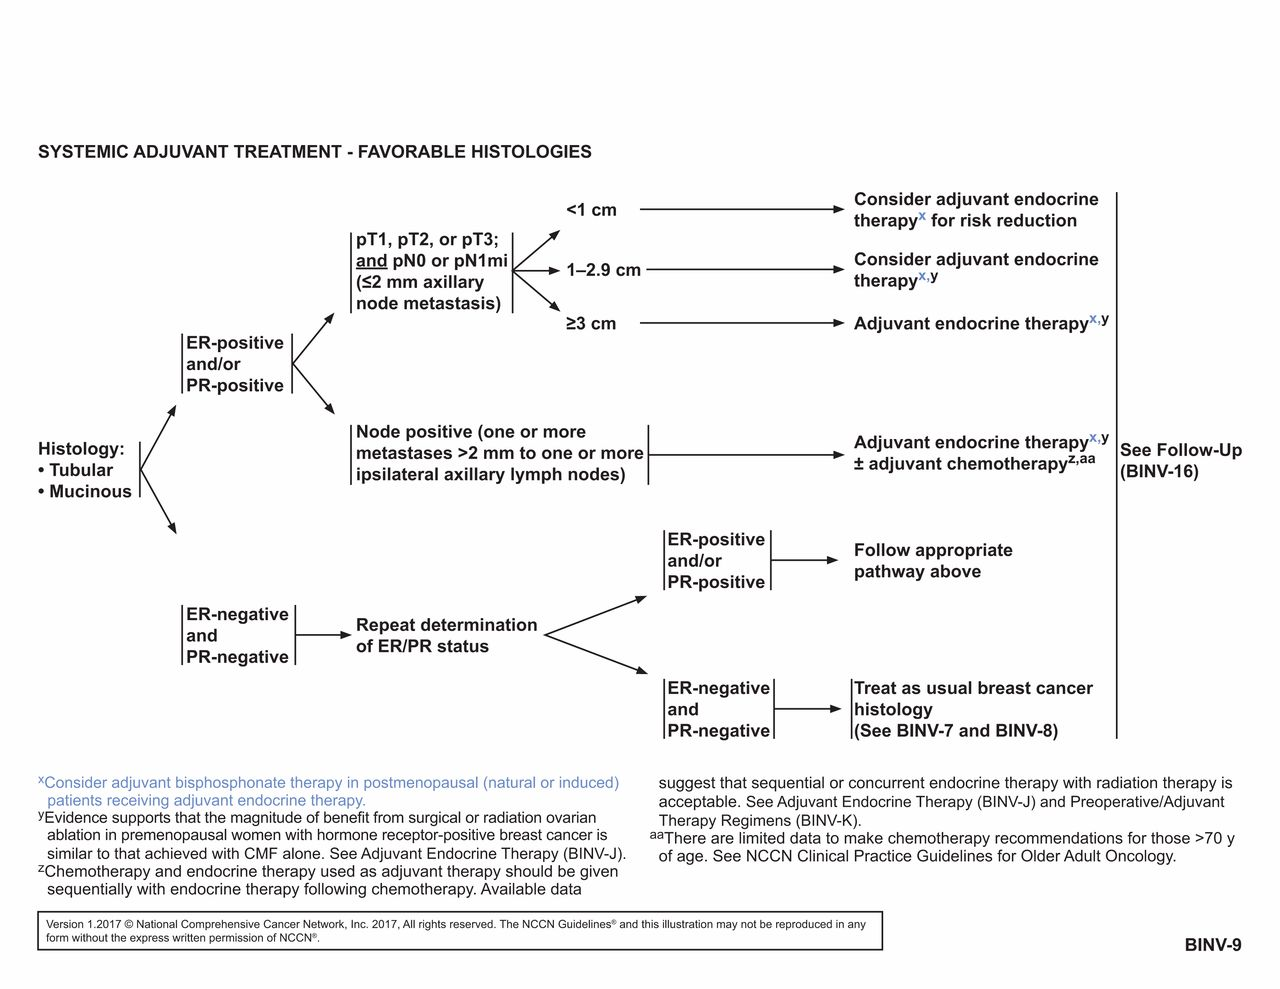 Nccn guidelines for breast cancer